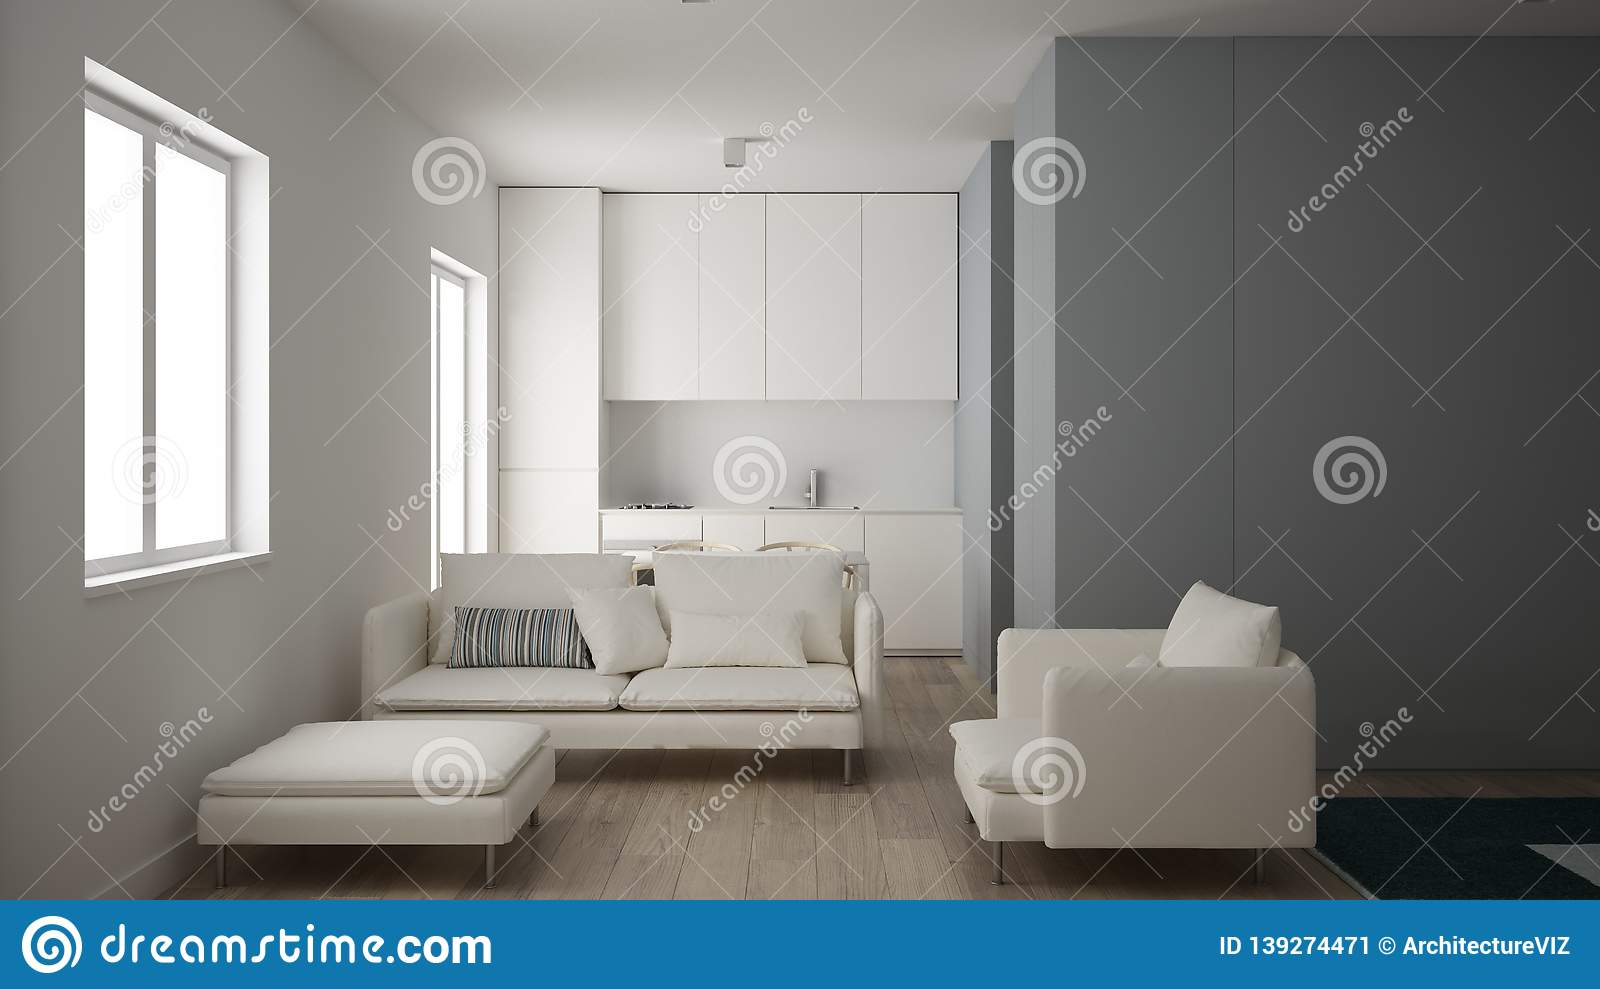 Minimalist Small Kitchen In One Bedroom Apartment Living Room With Sofa Armchair And Pouf Parquet Floor White Interior Design Stock Image Image Of House Interior 139274471